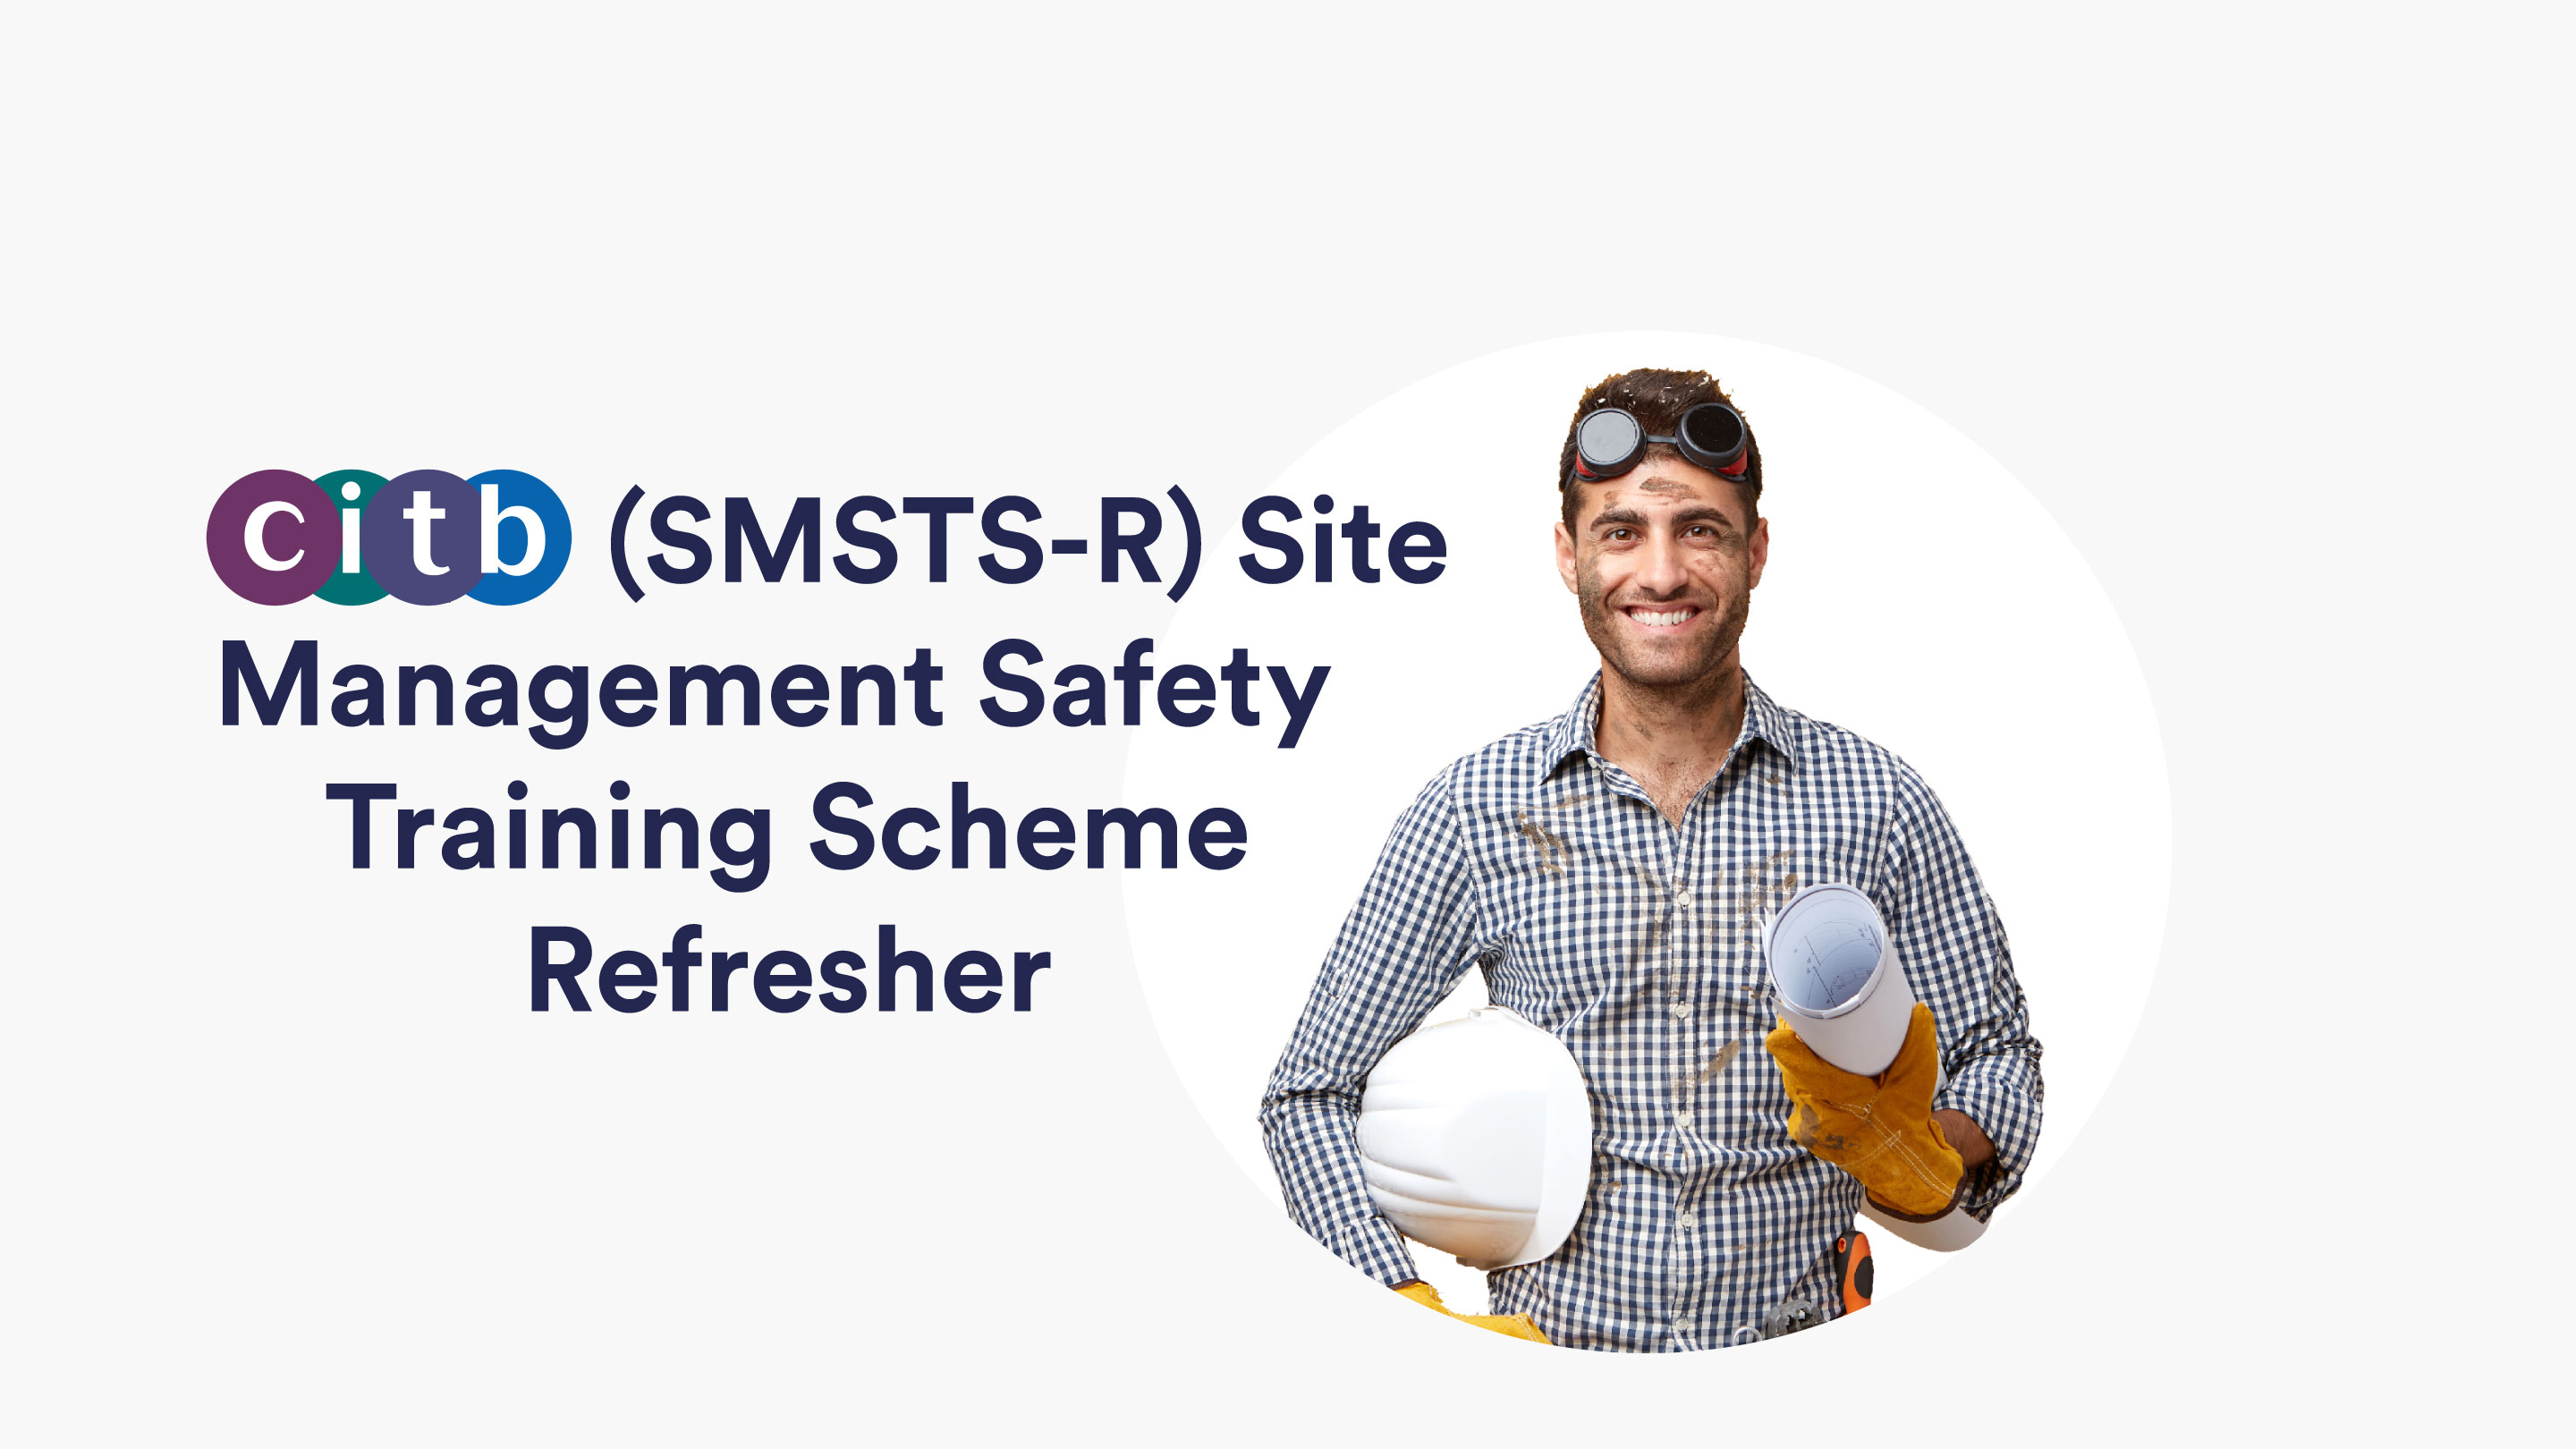 CITB_Site_Management_Safety_Training_Scheme_smsts_refresher_training_course_in_stoke_on_trent.jpg